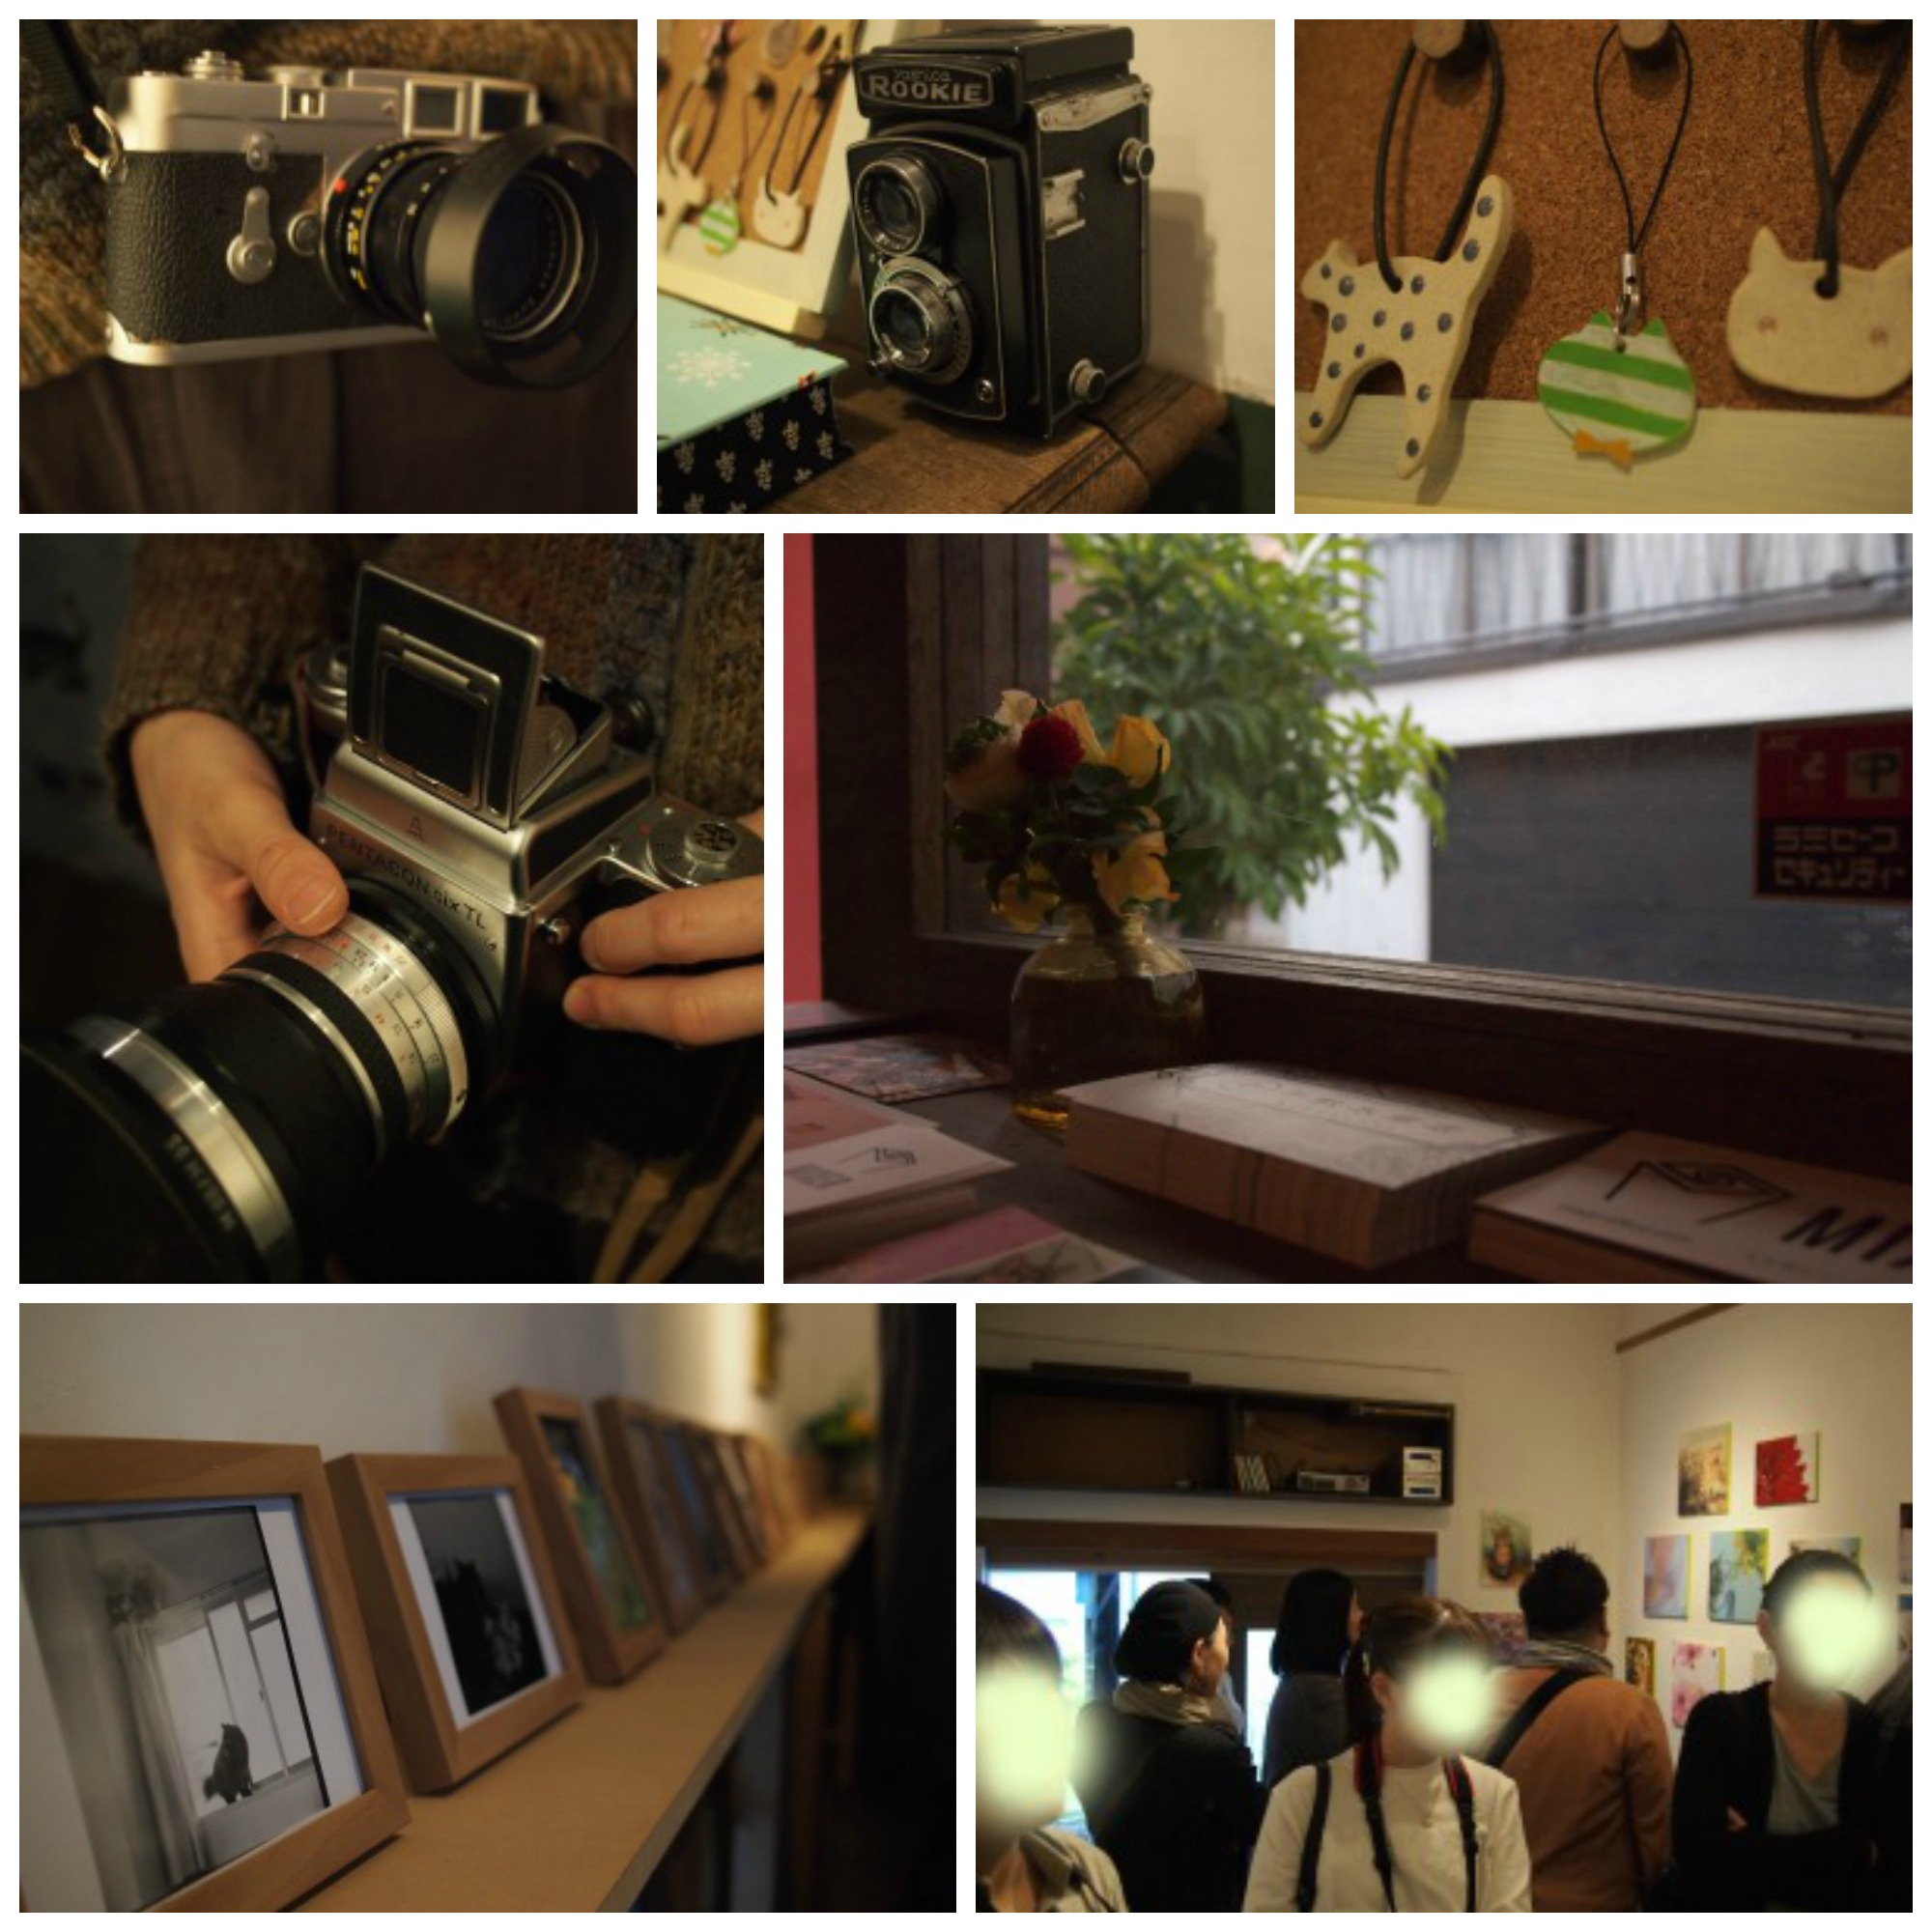 NecoHana_Collage2.jpg